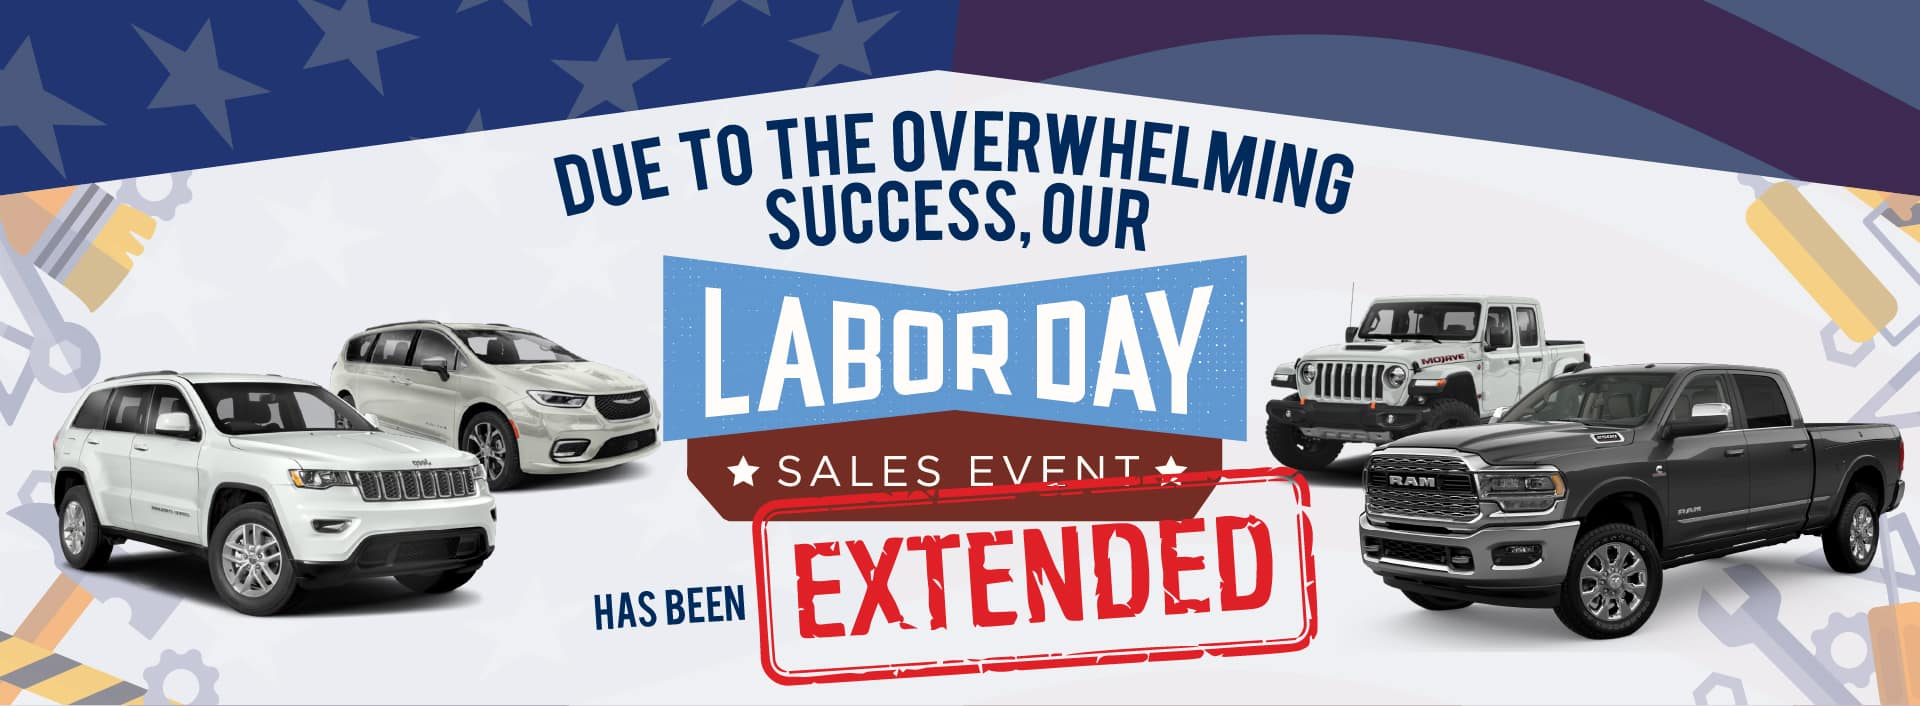 td labor day extended-12-100